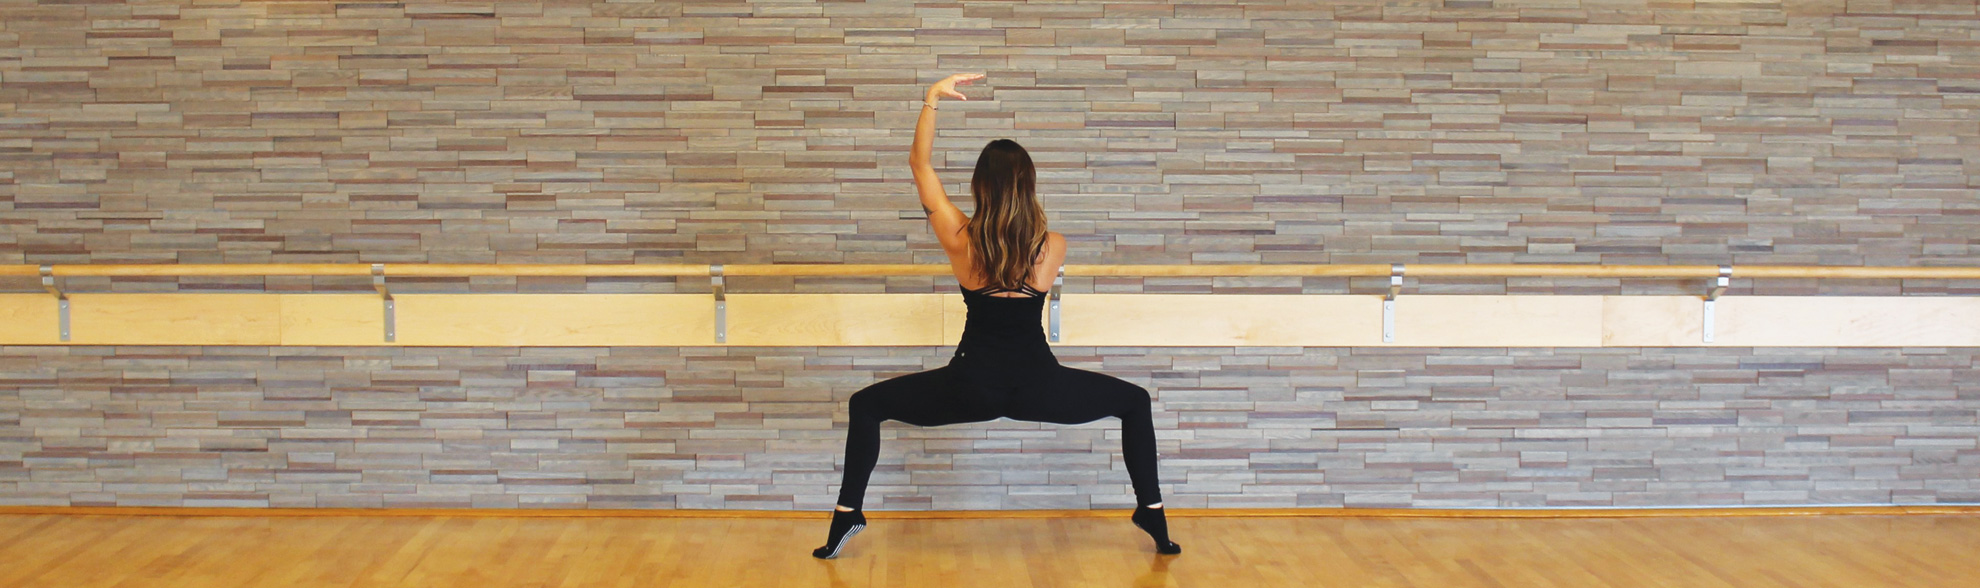 Yoga pilates barre strength training flexibility certified fitness unlimited 1betcityfo Choice Image